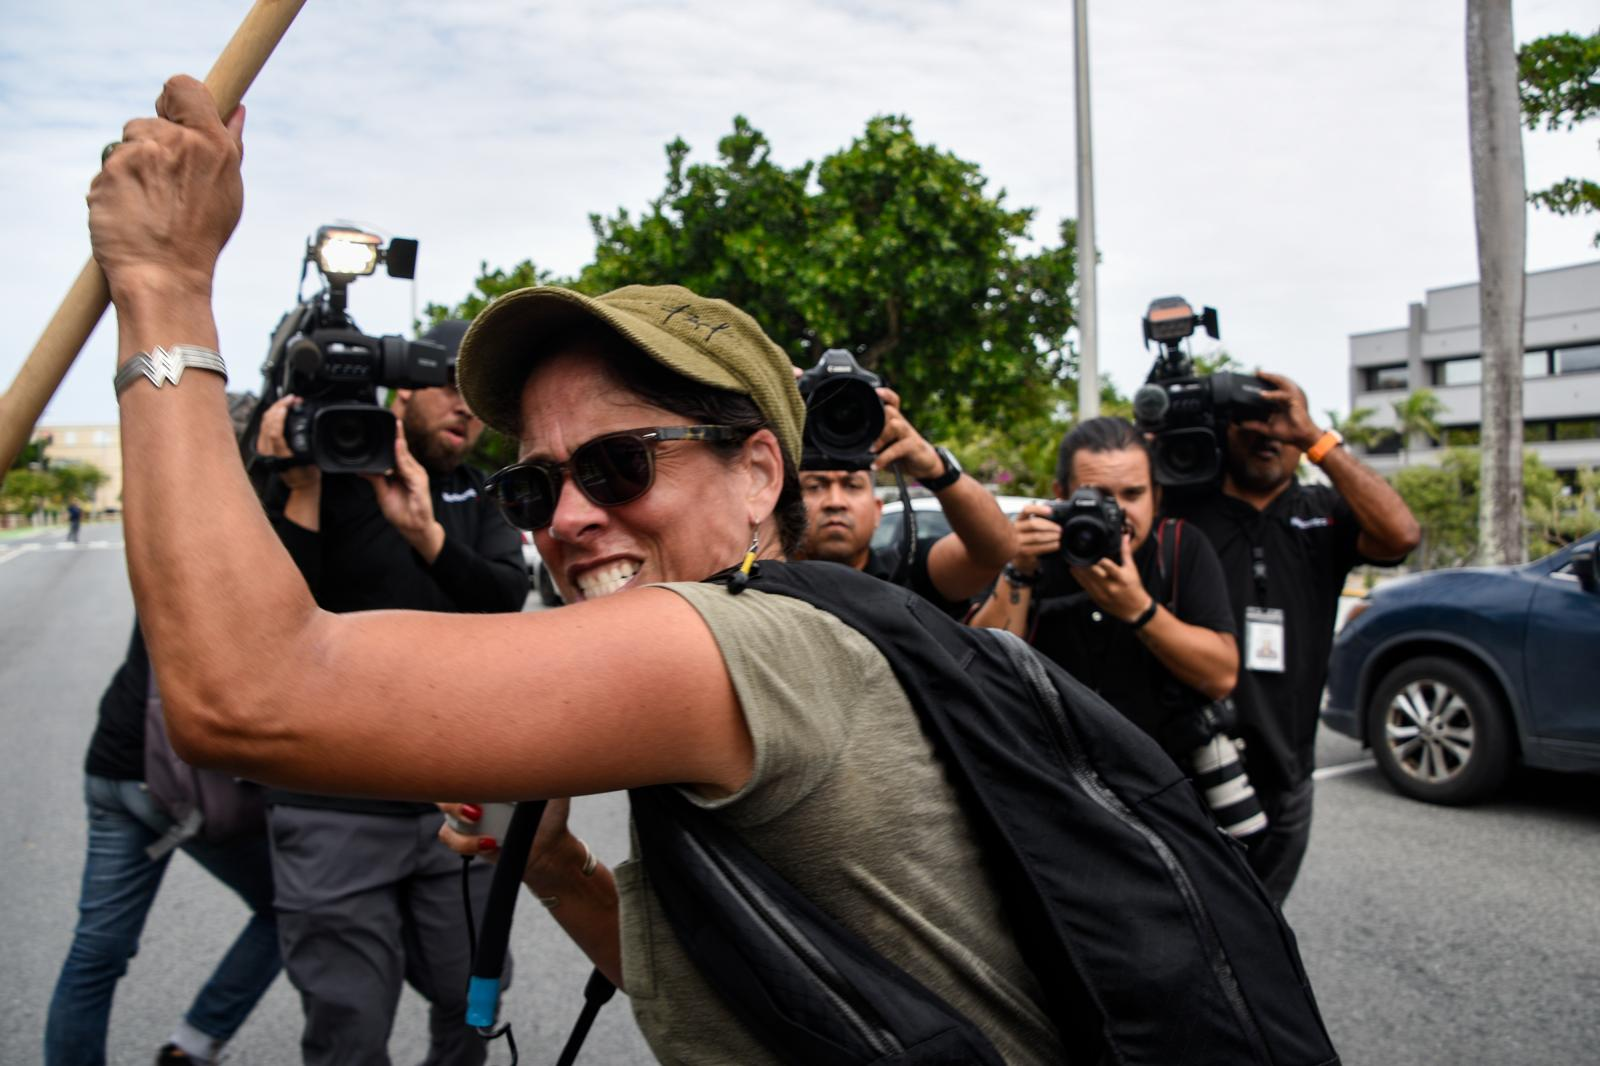 A lone protester tries to stop the car of Pedro Pierluisi, a politician from the statehood party that took over the governance of the island following Rosselló but was later considered as unconstitutional by the Supreme Court and was asked to step down.